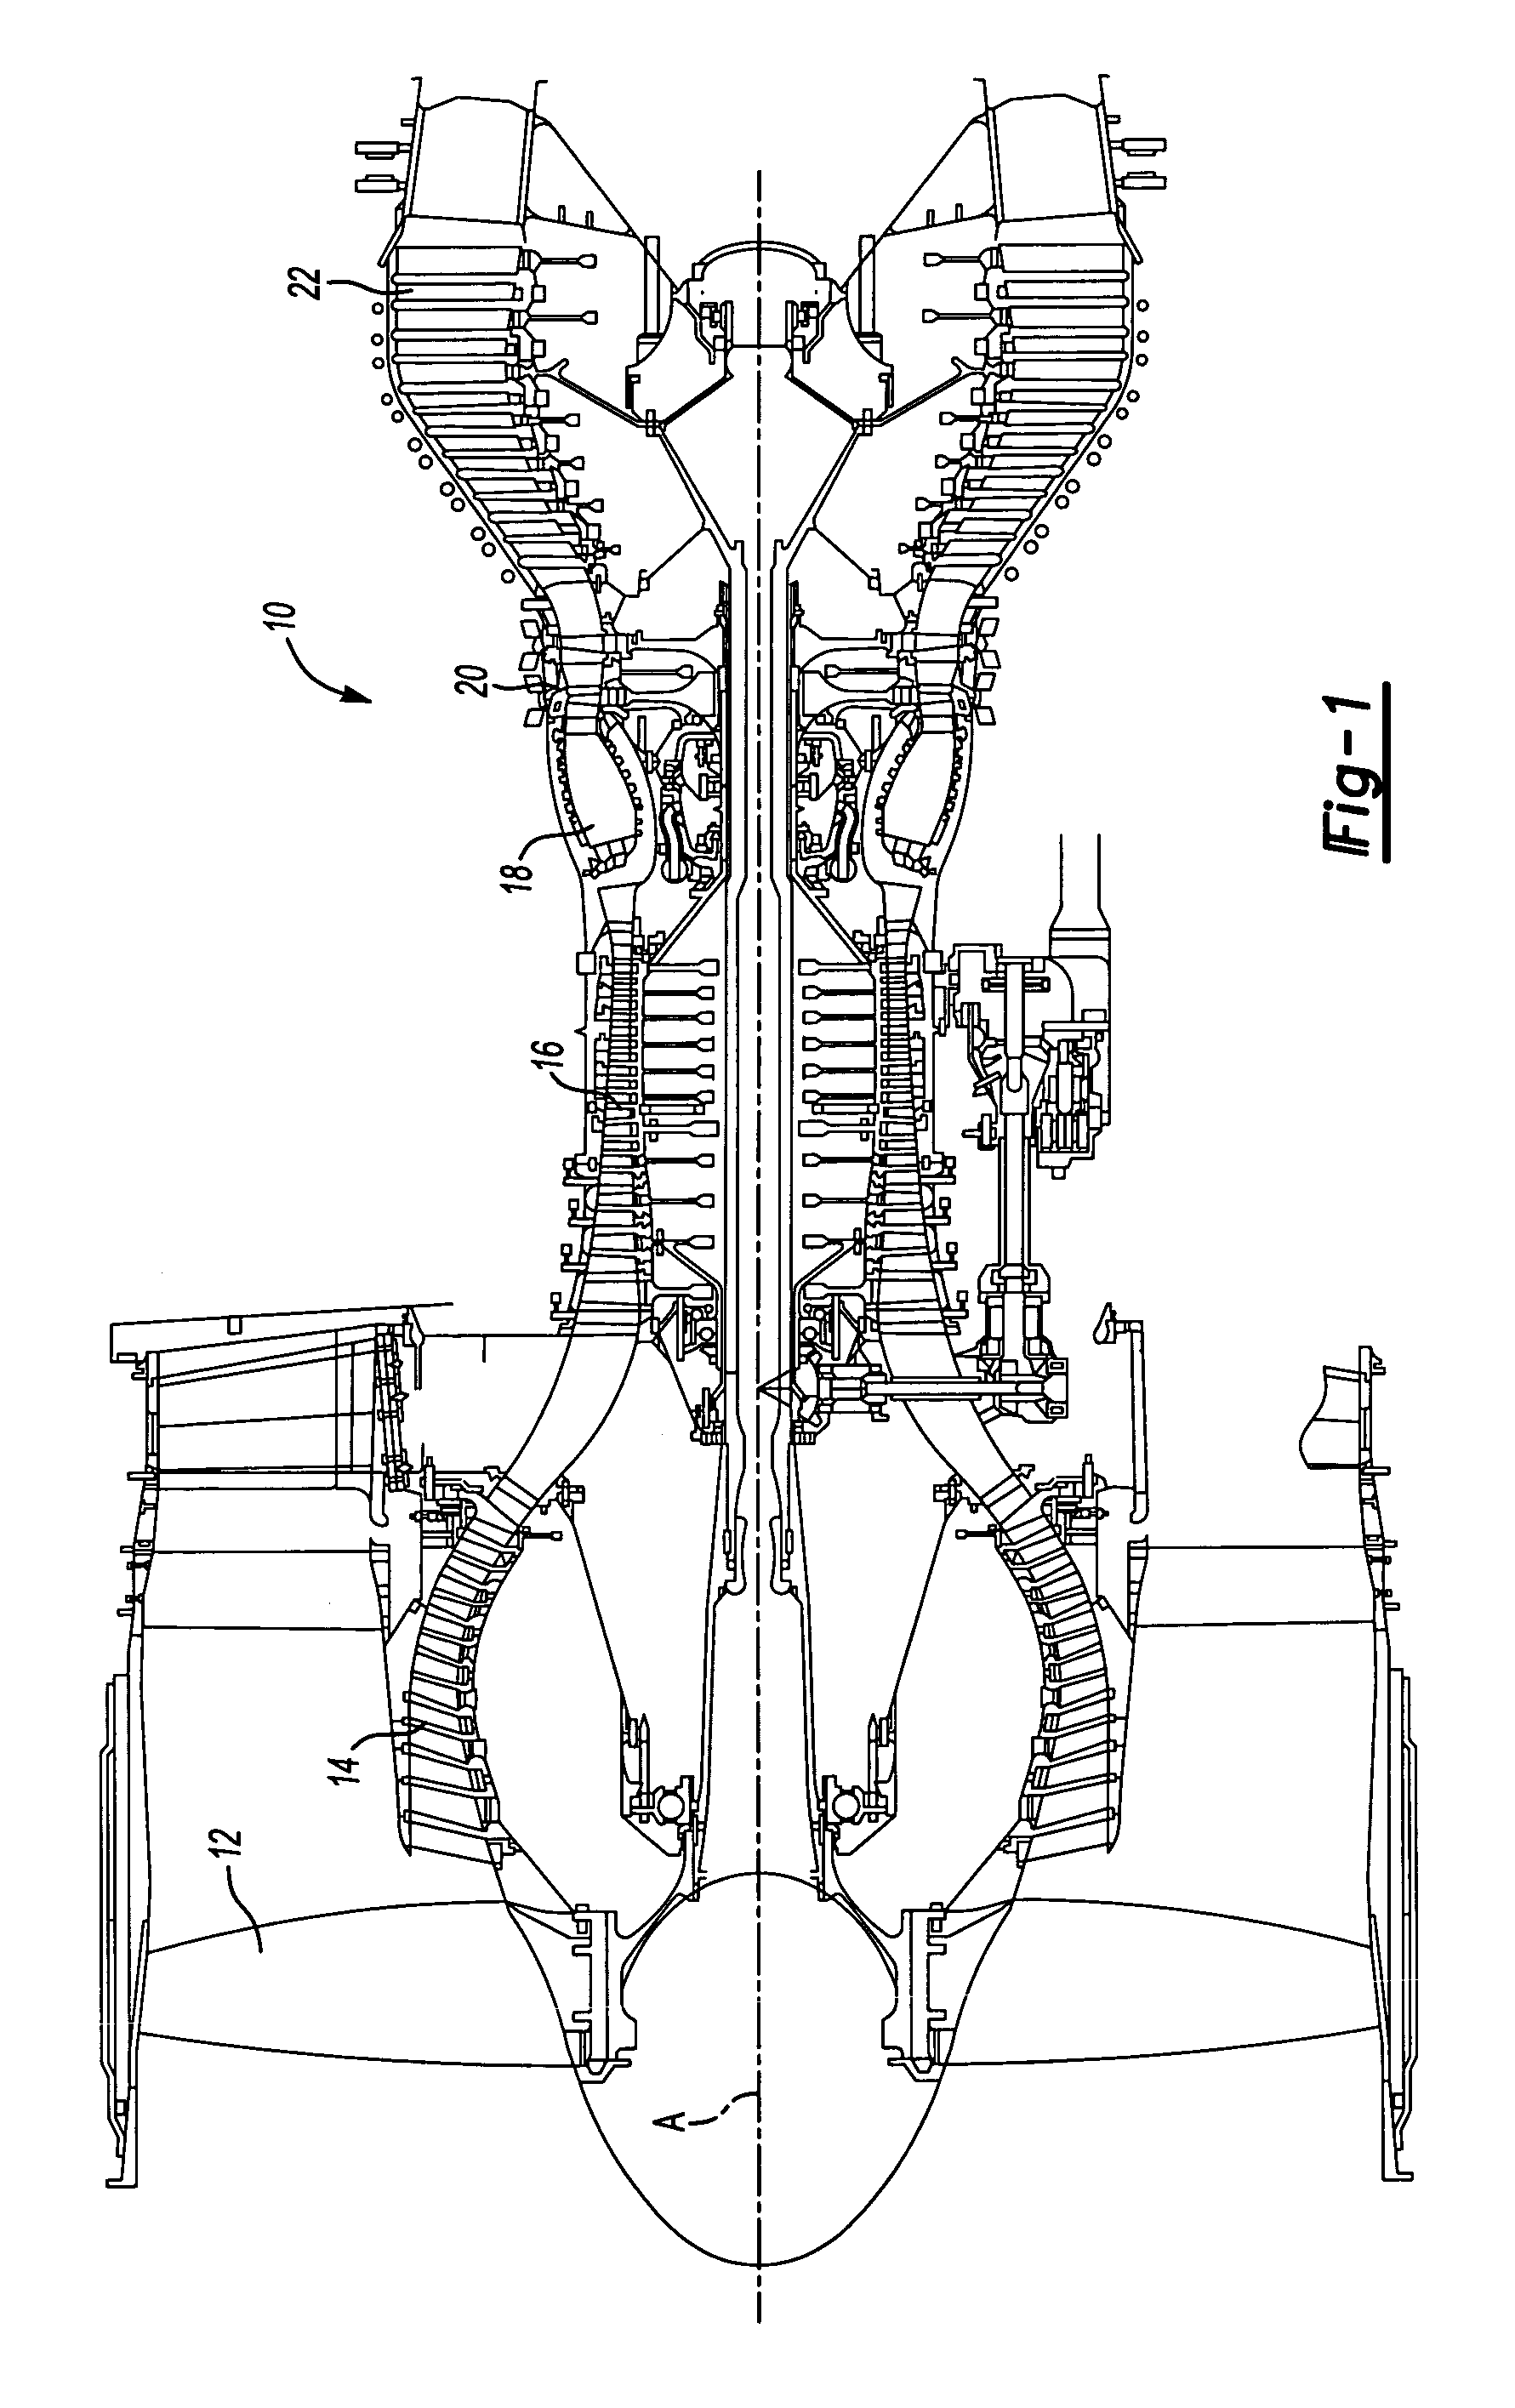 patent us7025563 - stator vane assembly for a gas turbine engine